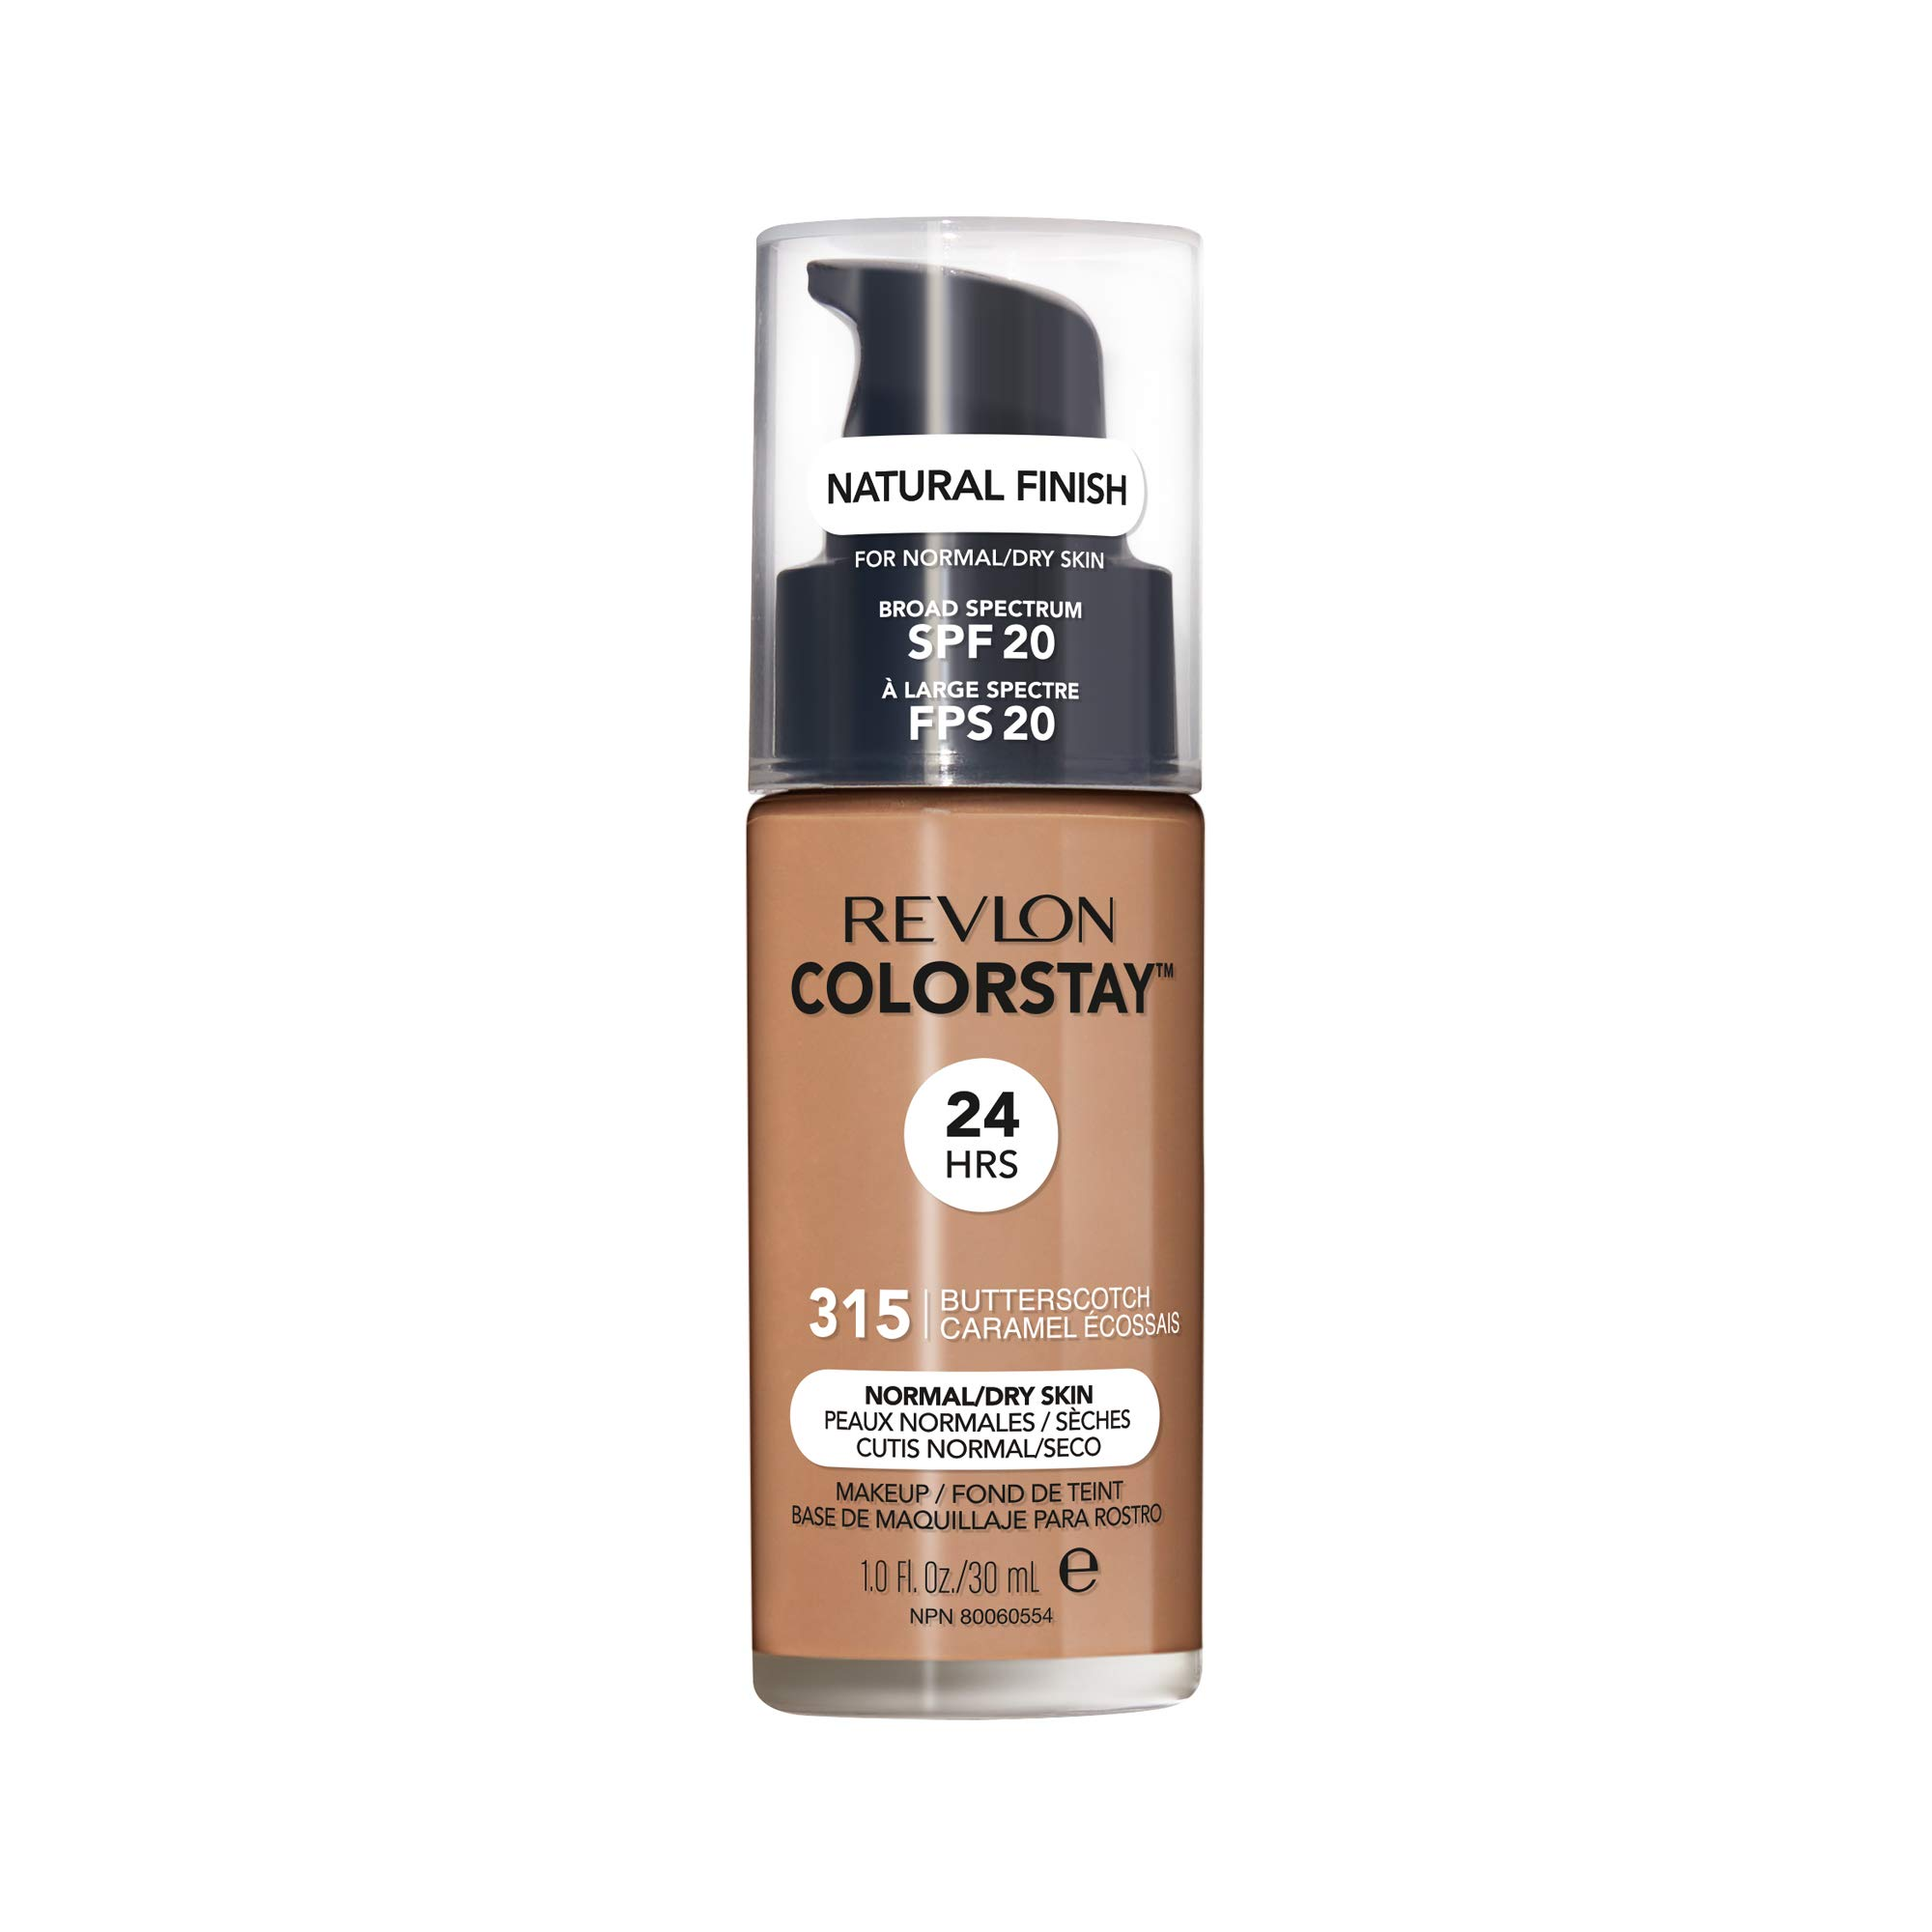 Revlon ColorStay Makeup for Normal/Dry Skin SPF 20, Longwear Liquid Foundation, with Medium-Full Coverage, Natural Finish, Oil Free, 315 Butterscotch, 1.0 oz